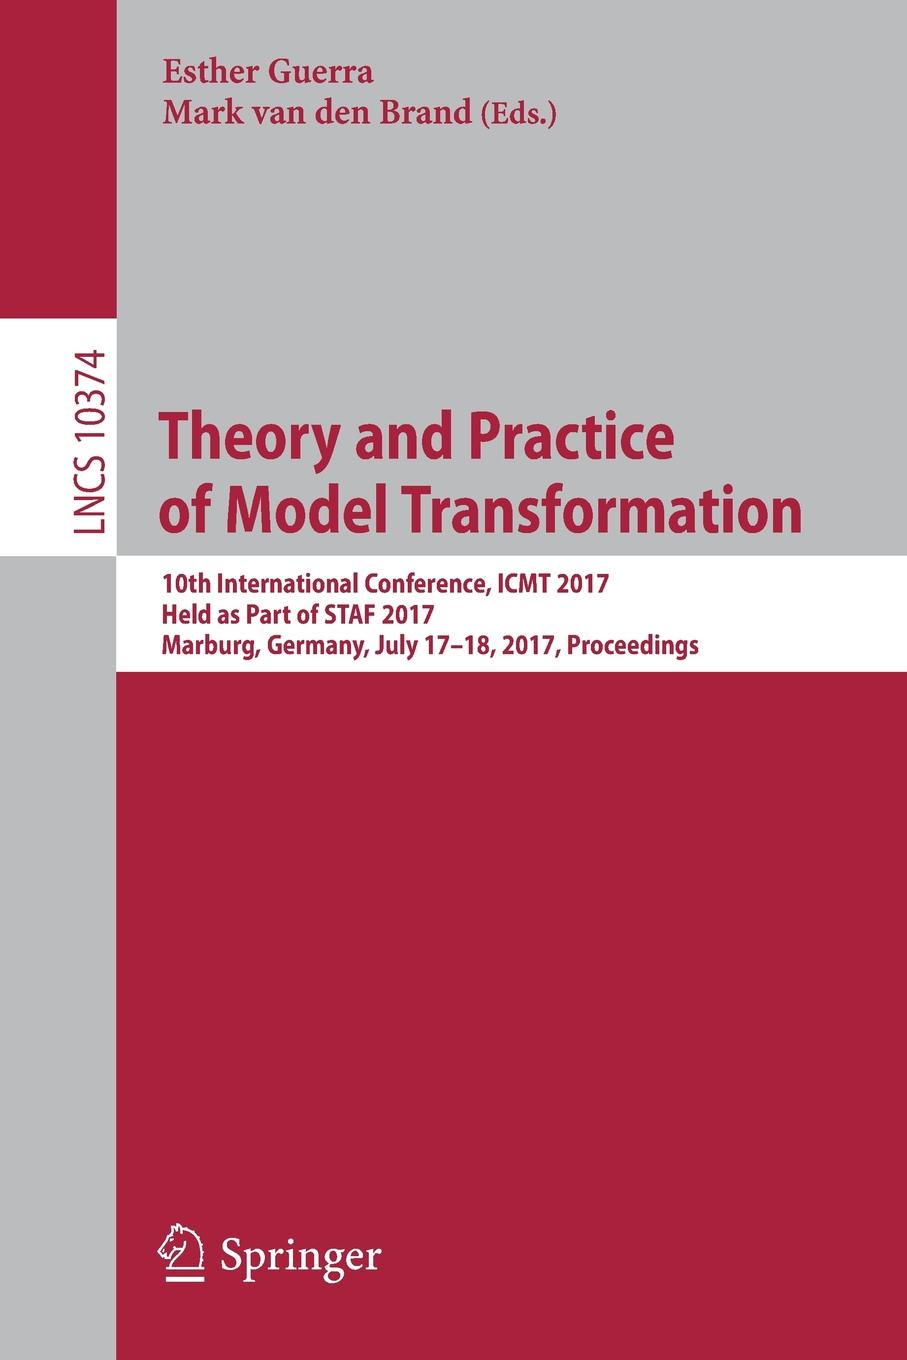 Theory and Practice of Model Transformation. 10th International Conference, ICMT 2017, Held as Part of STAF 2017, Marburg, Germany, July 17-18, 2017, Proceedings eremitage geschichte der museumsgebaude und sammlungen